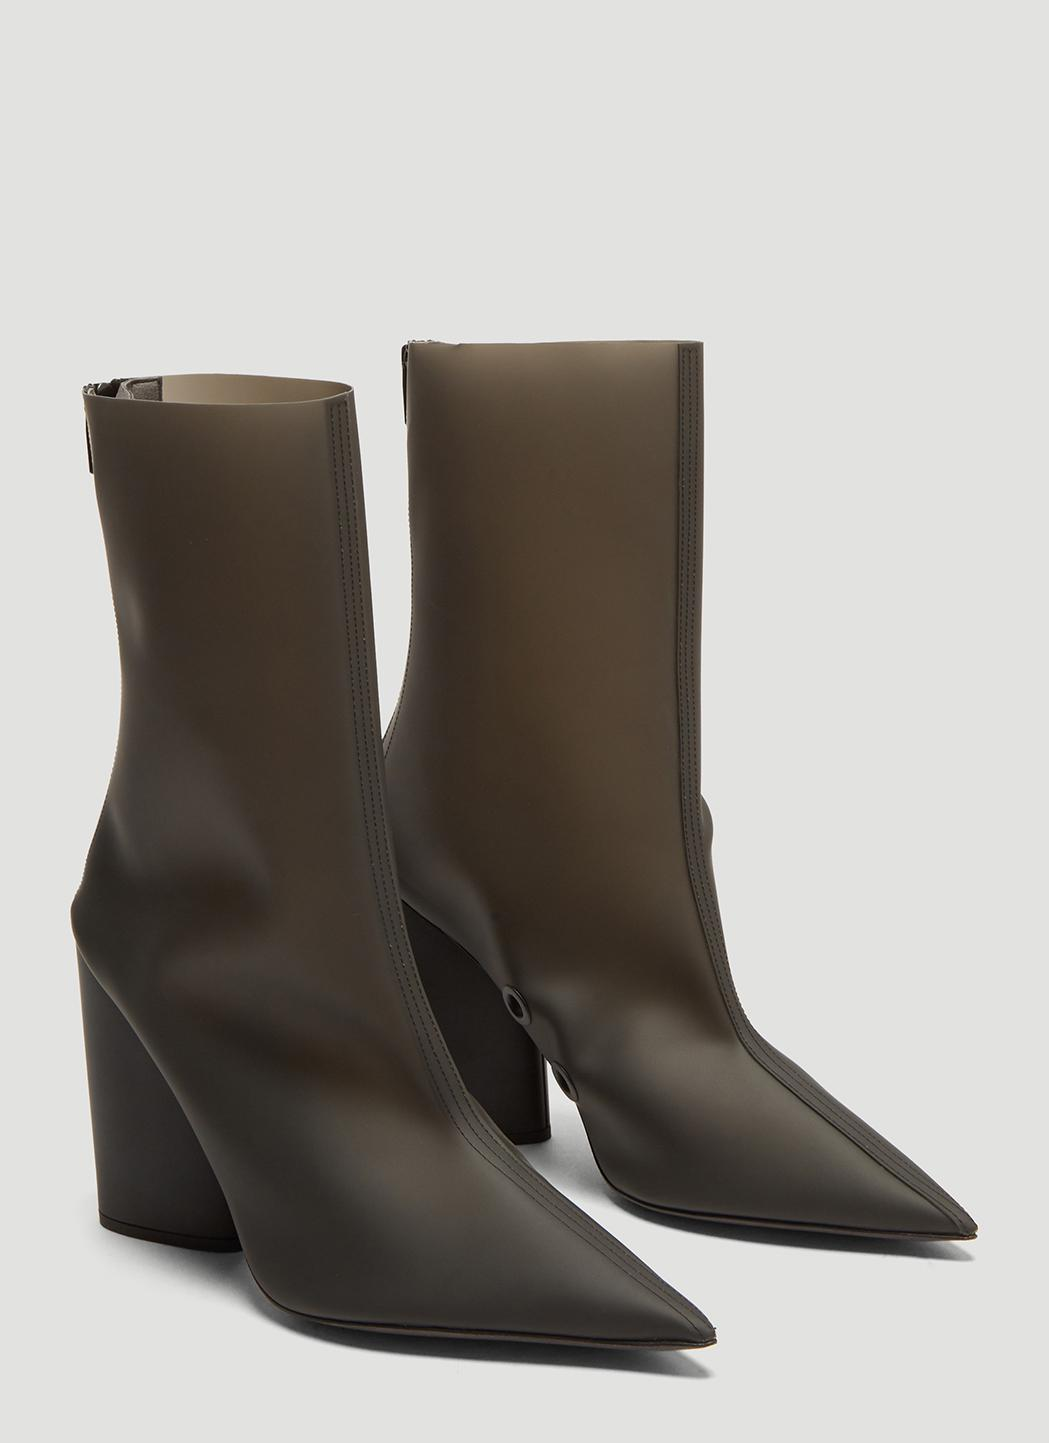 301fabfd24 Yeezy - Semi Opaque Pvc Ankle Boots In Black - Lyst. View fullscreen